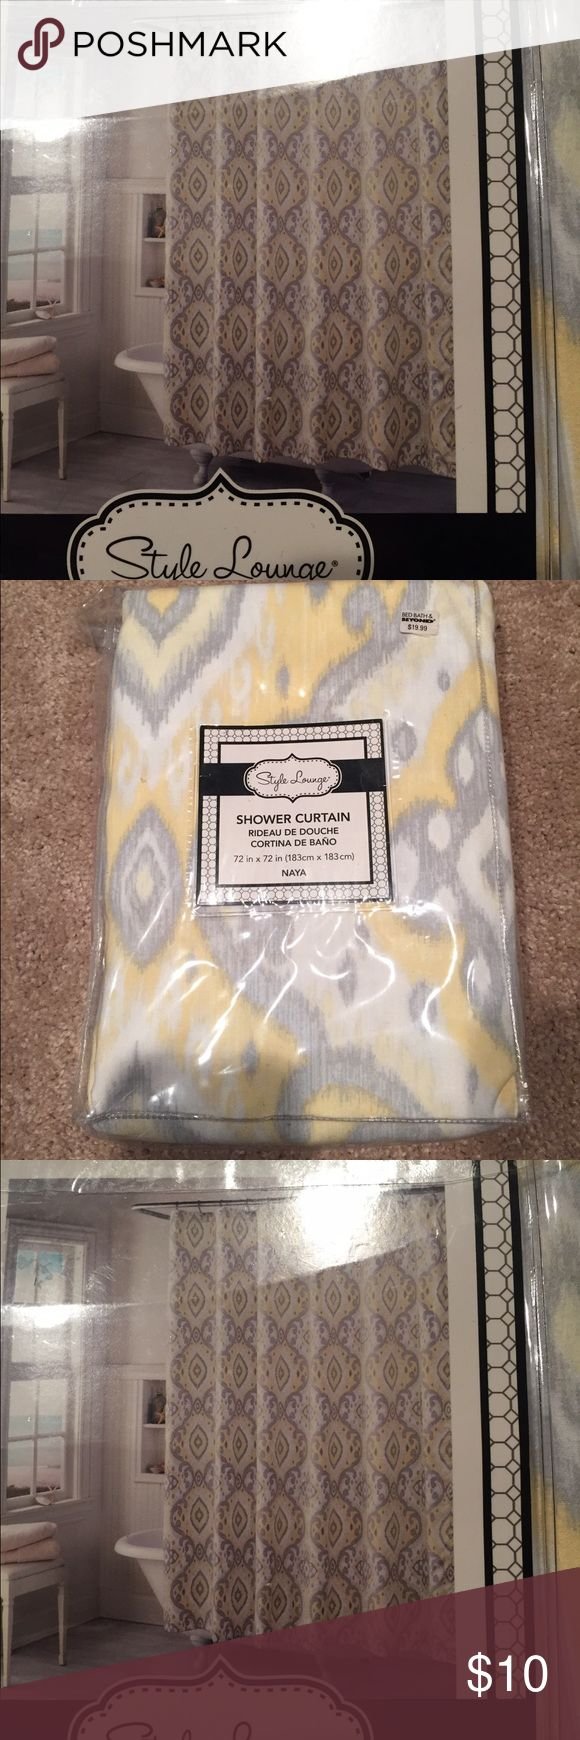 NEW Bed Bath & Beyond Shower Curtain, yellow gray Brand new, never opened. We just changed the theme of our bathroom before needing this. Style Lounge Other